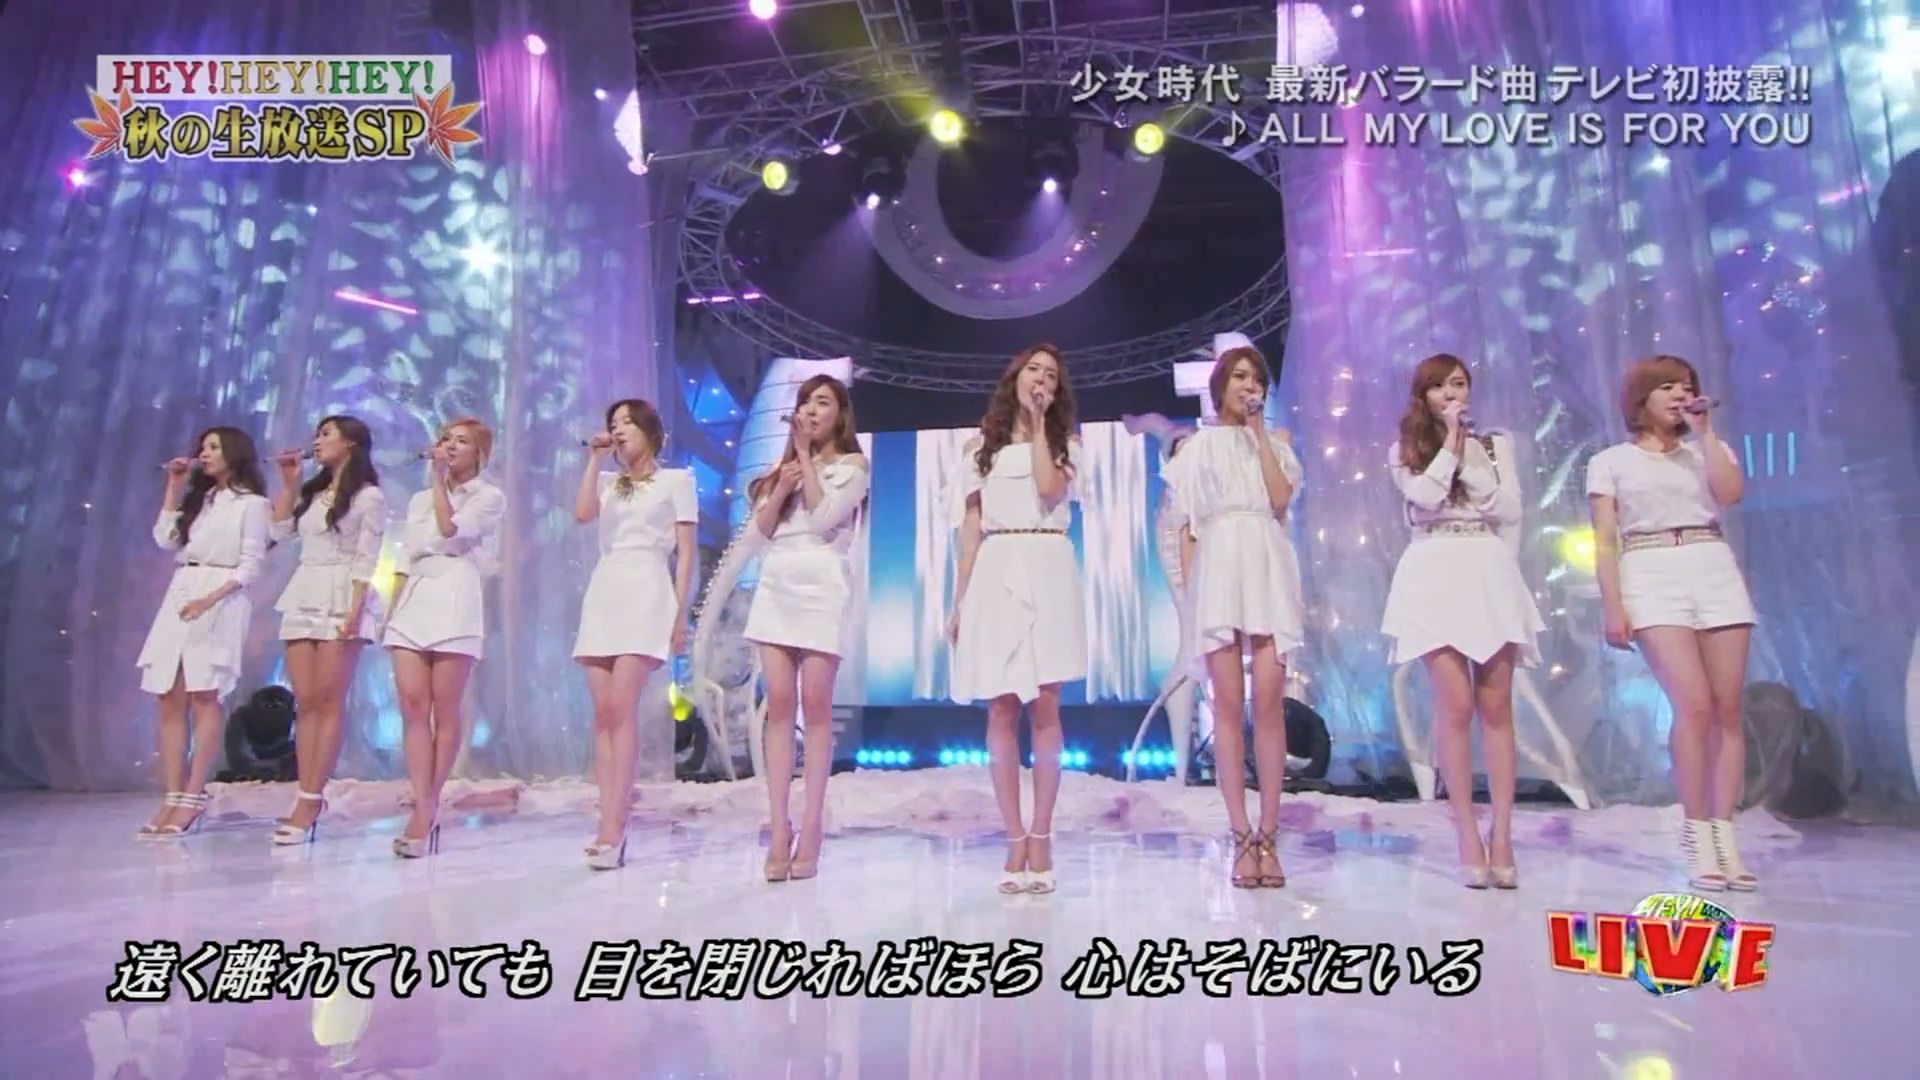 Wallpaper All My Love Is For You : Girls Generation Performs Oh! , MR. TAXI , and All My Love Is For You on HEY!HEY!HEY ...